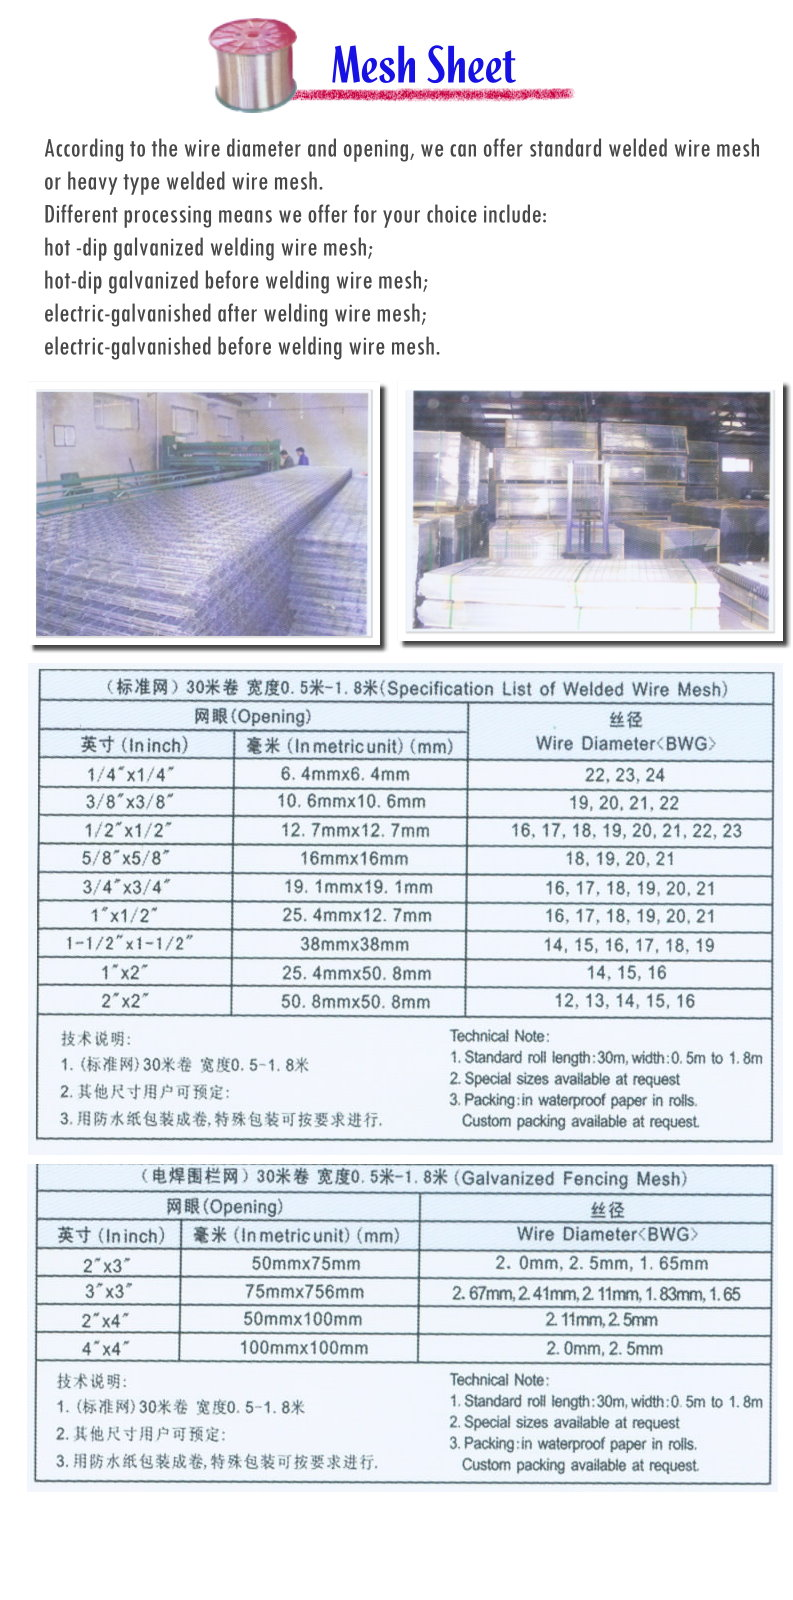 Cute fine wire mesh sheets ideas wiring diagram ideas blogitia famous wire mesh sizes chart standard sheets ideas electrical keyboard keysfo Image collections